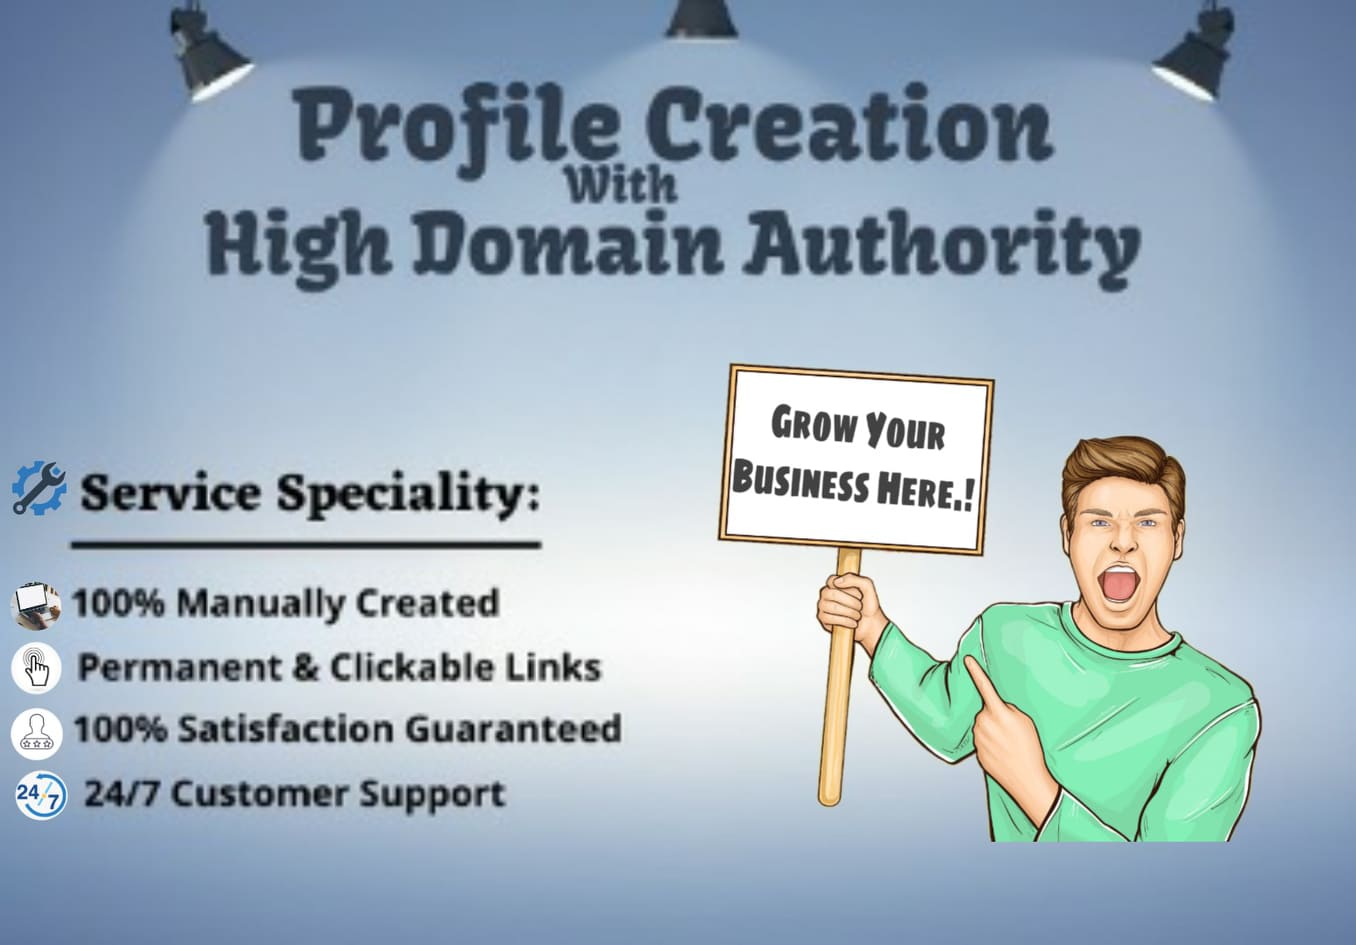 I Will Build 40 Permanent and Clickable High Authority Profile Creation Backlinks